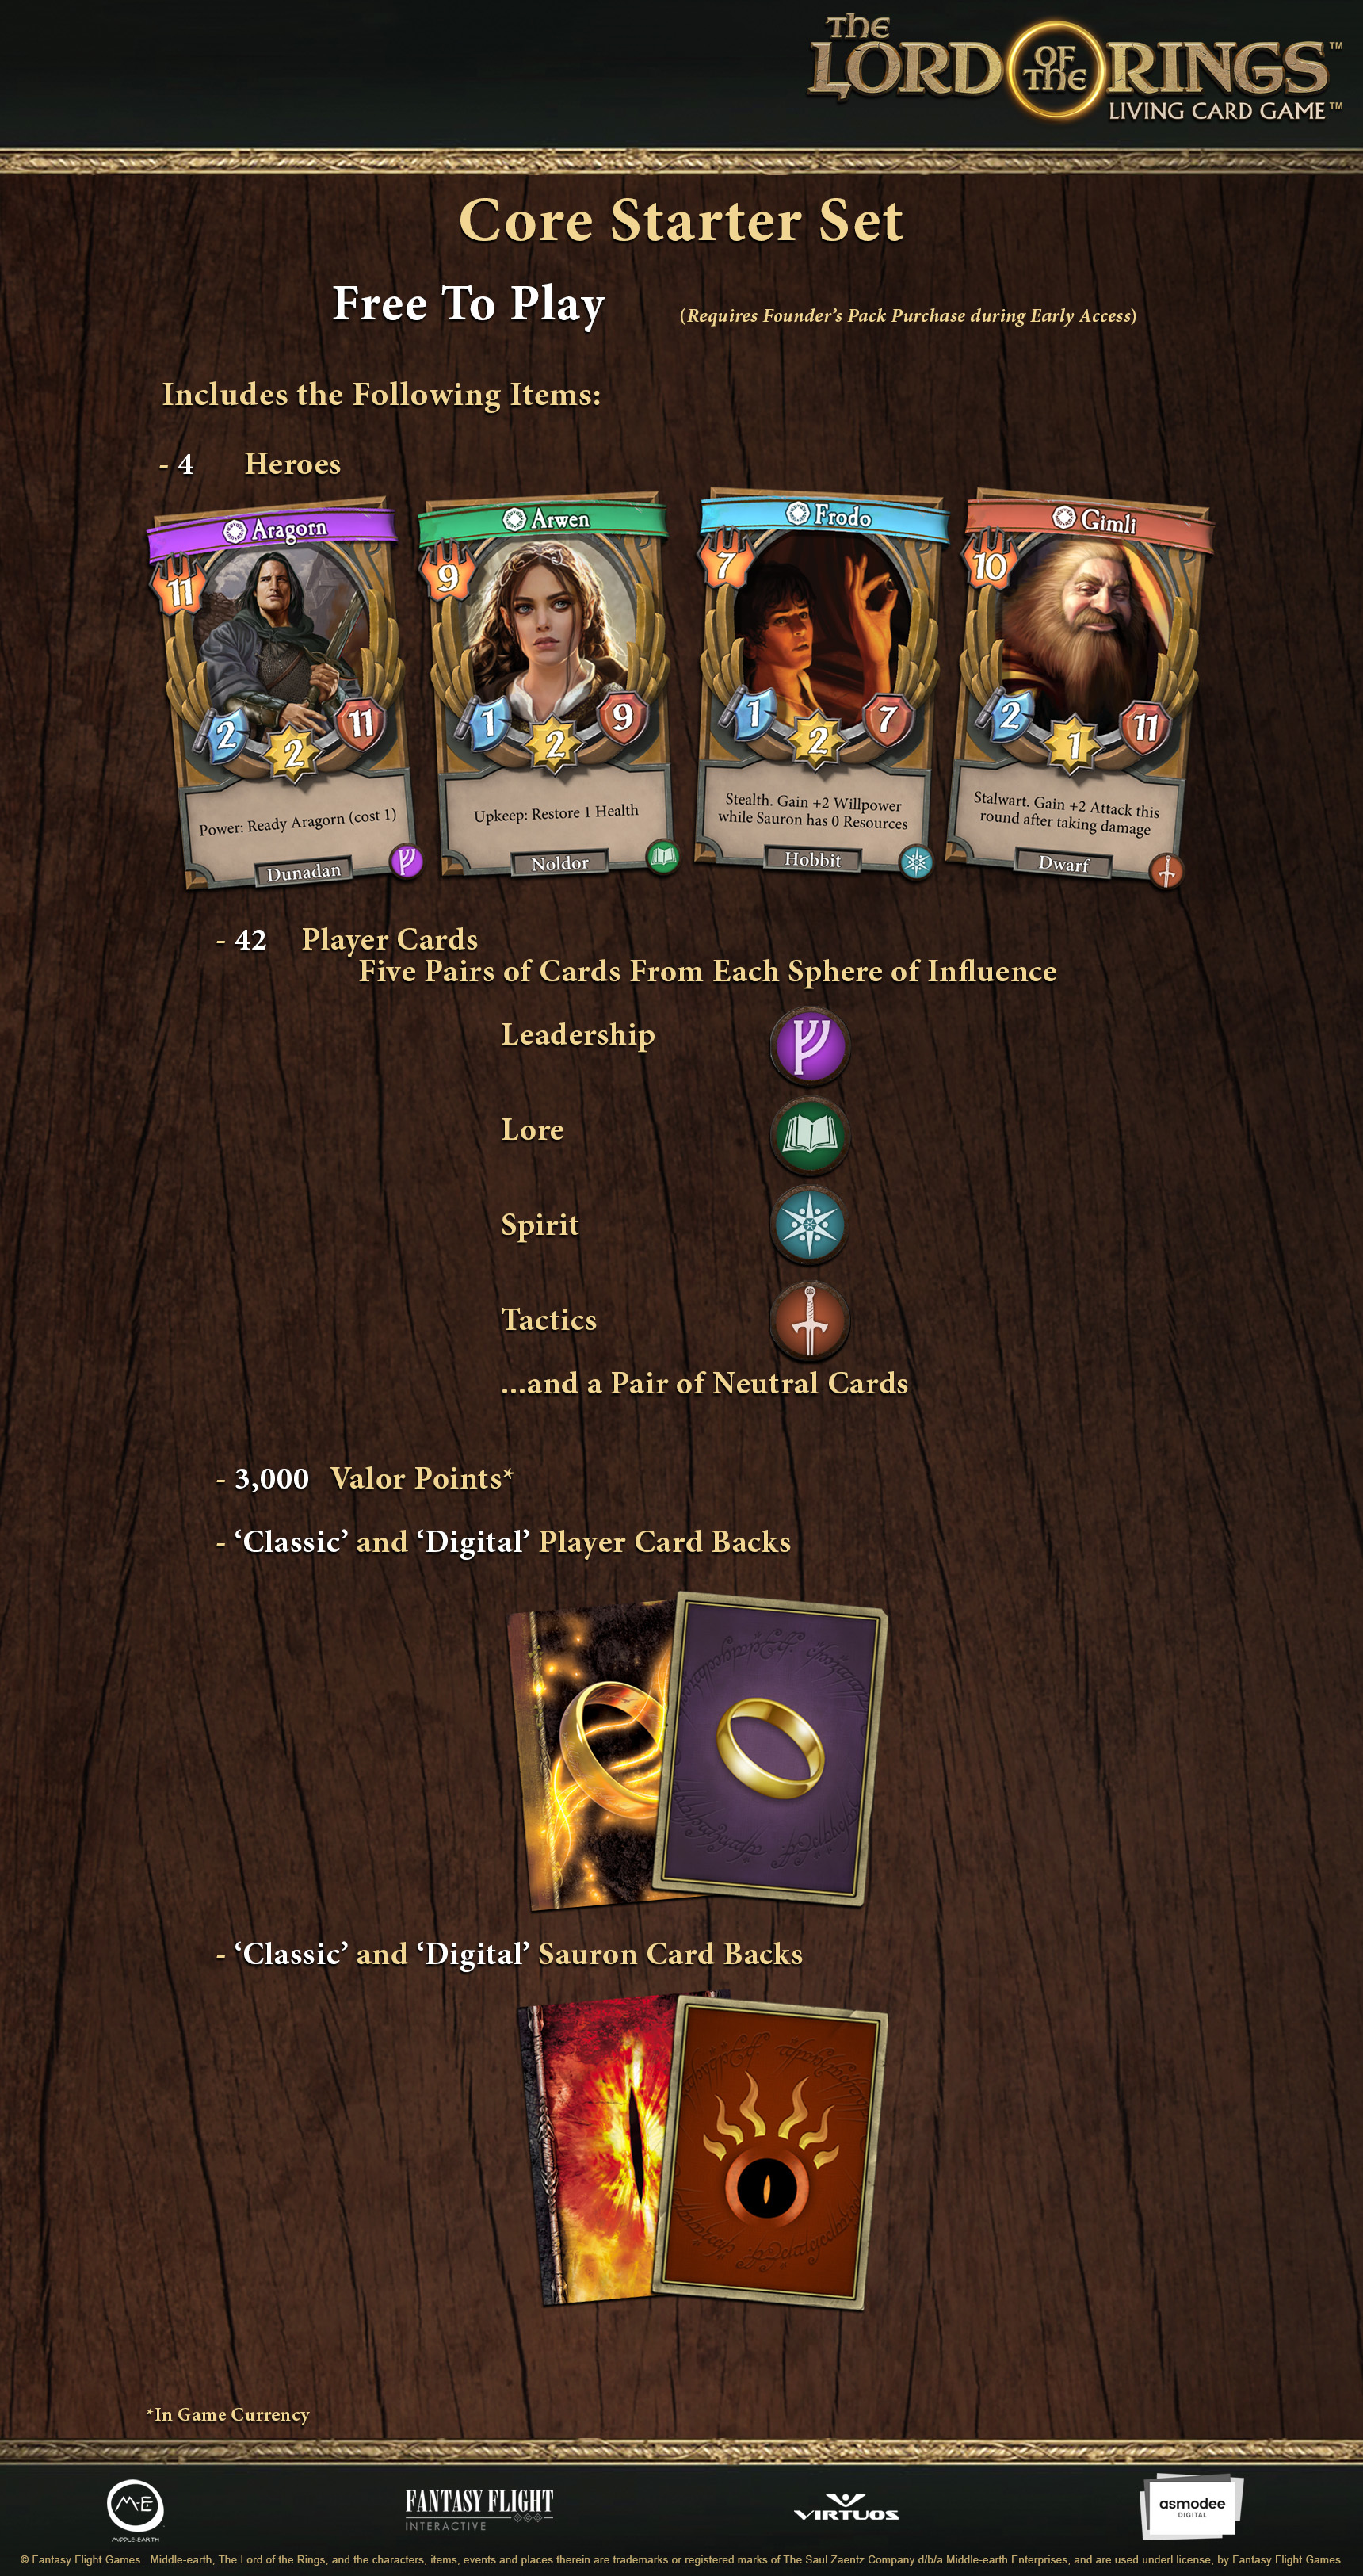 Lord of the Rings : Living Card Game Online - Page 5 16c6d2908bc93e07bb29a64fb48b1dc935dcbf6d